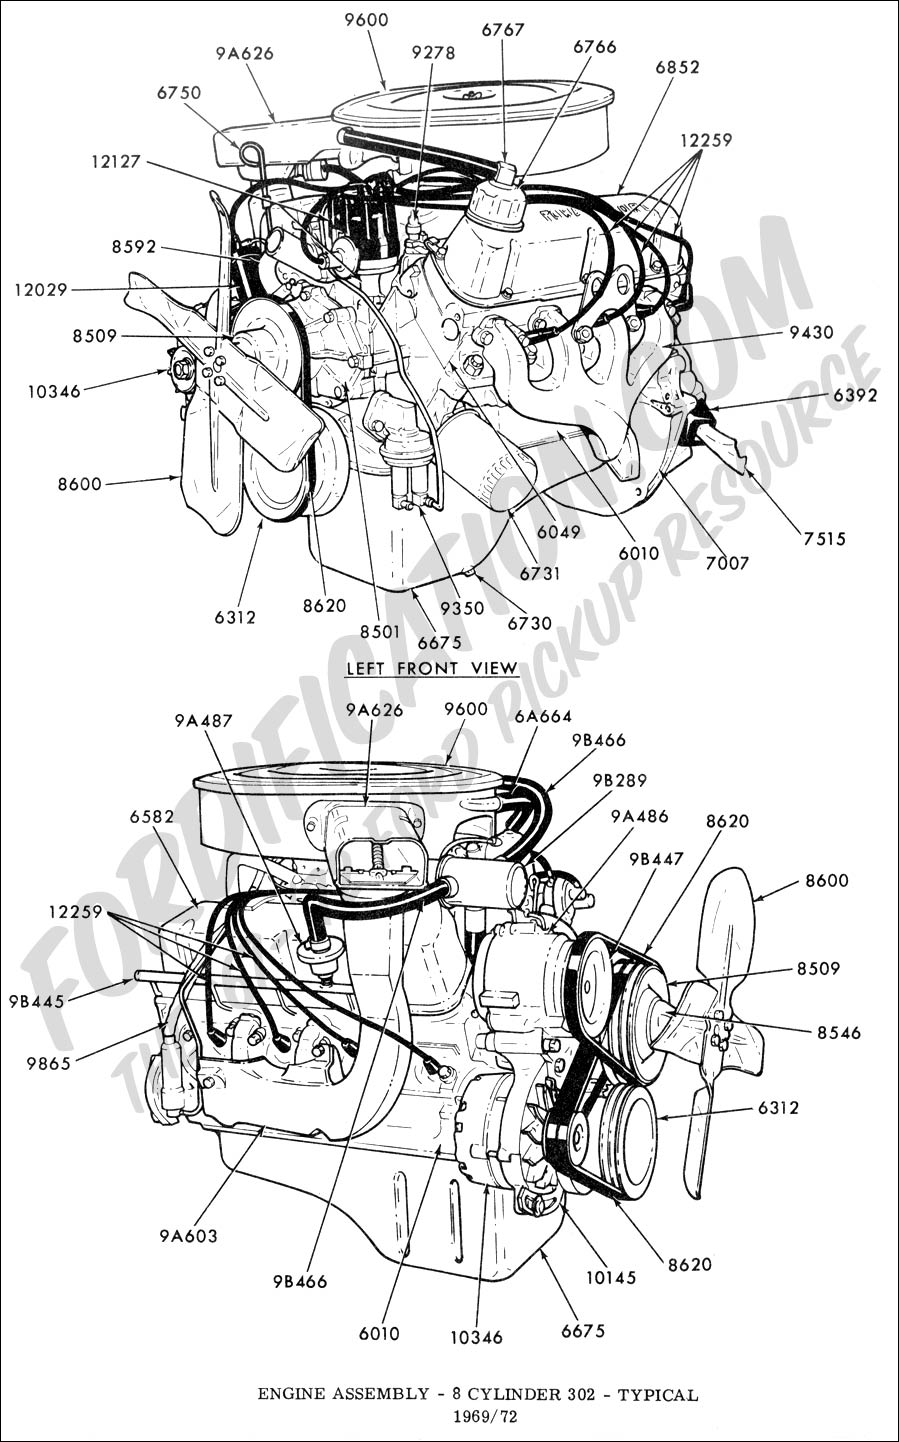 1970 ford 302 engine diagram 1970 ford 302 engine parts diagram